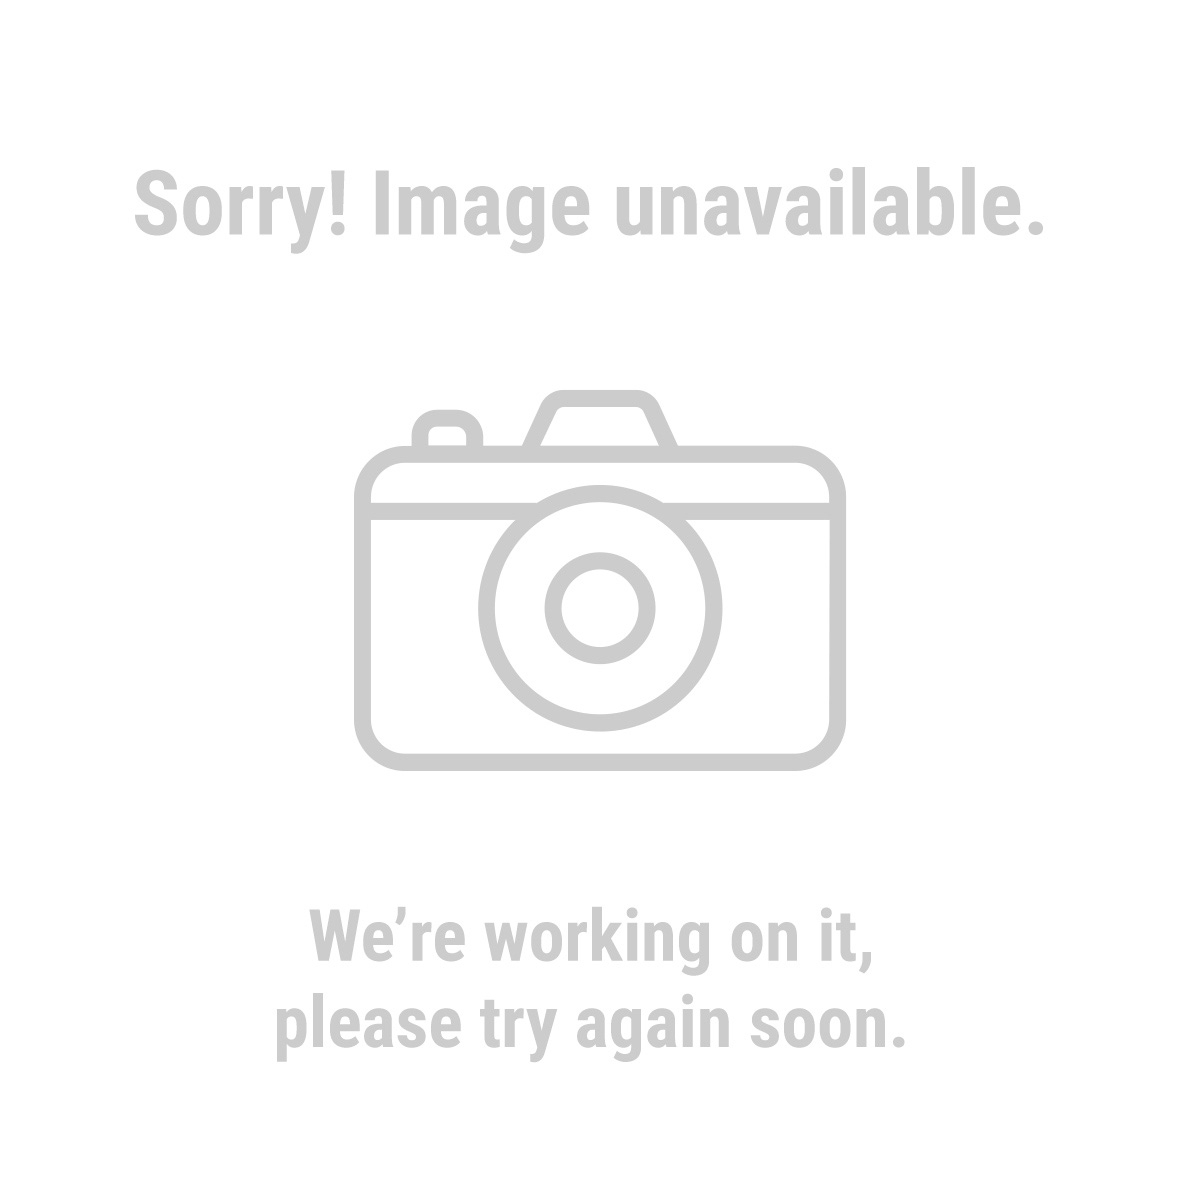 Central Pneumatic 62511 6 gal. 1.5 HP 150 PSI Professional Air Compressor